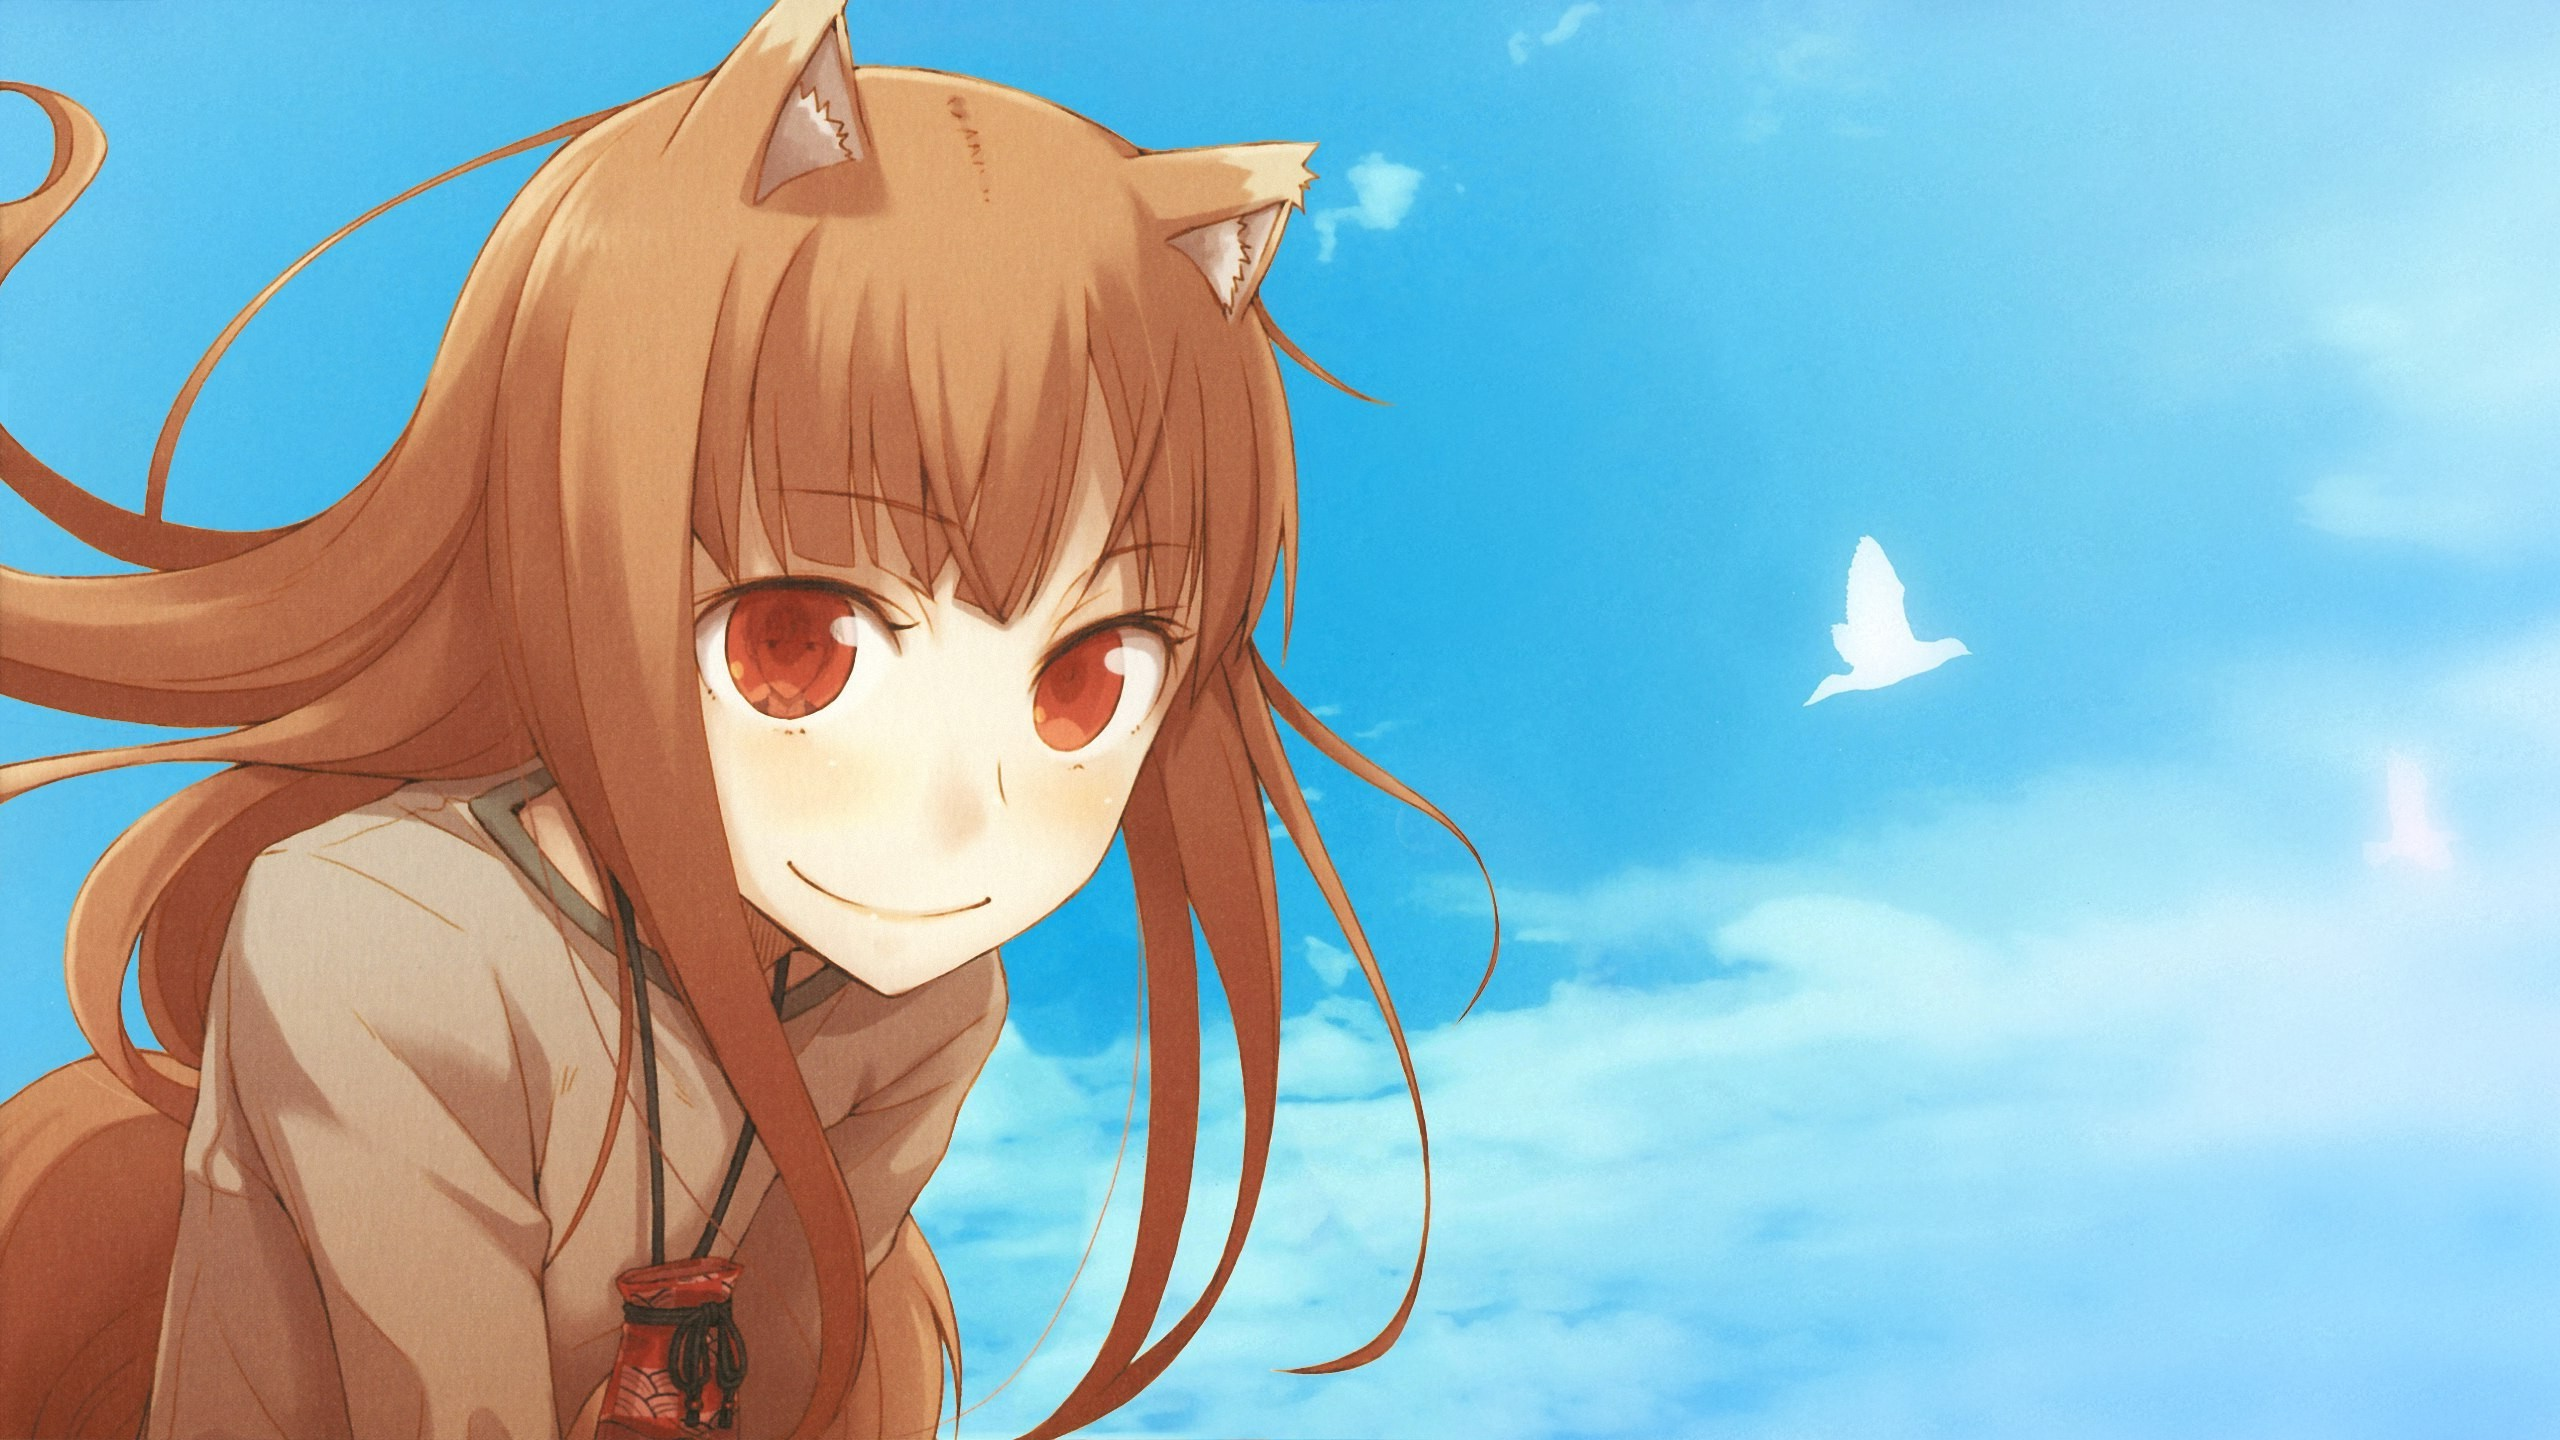 Boy Girl Love Wallpapers Mobile Spice And Wolf Holo Wallpapers Hd Desktop And Mobile